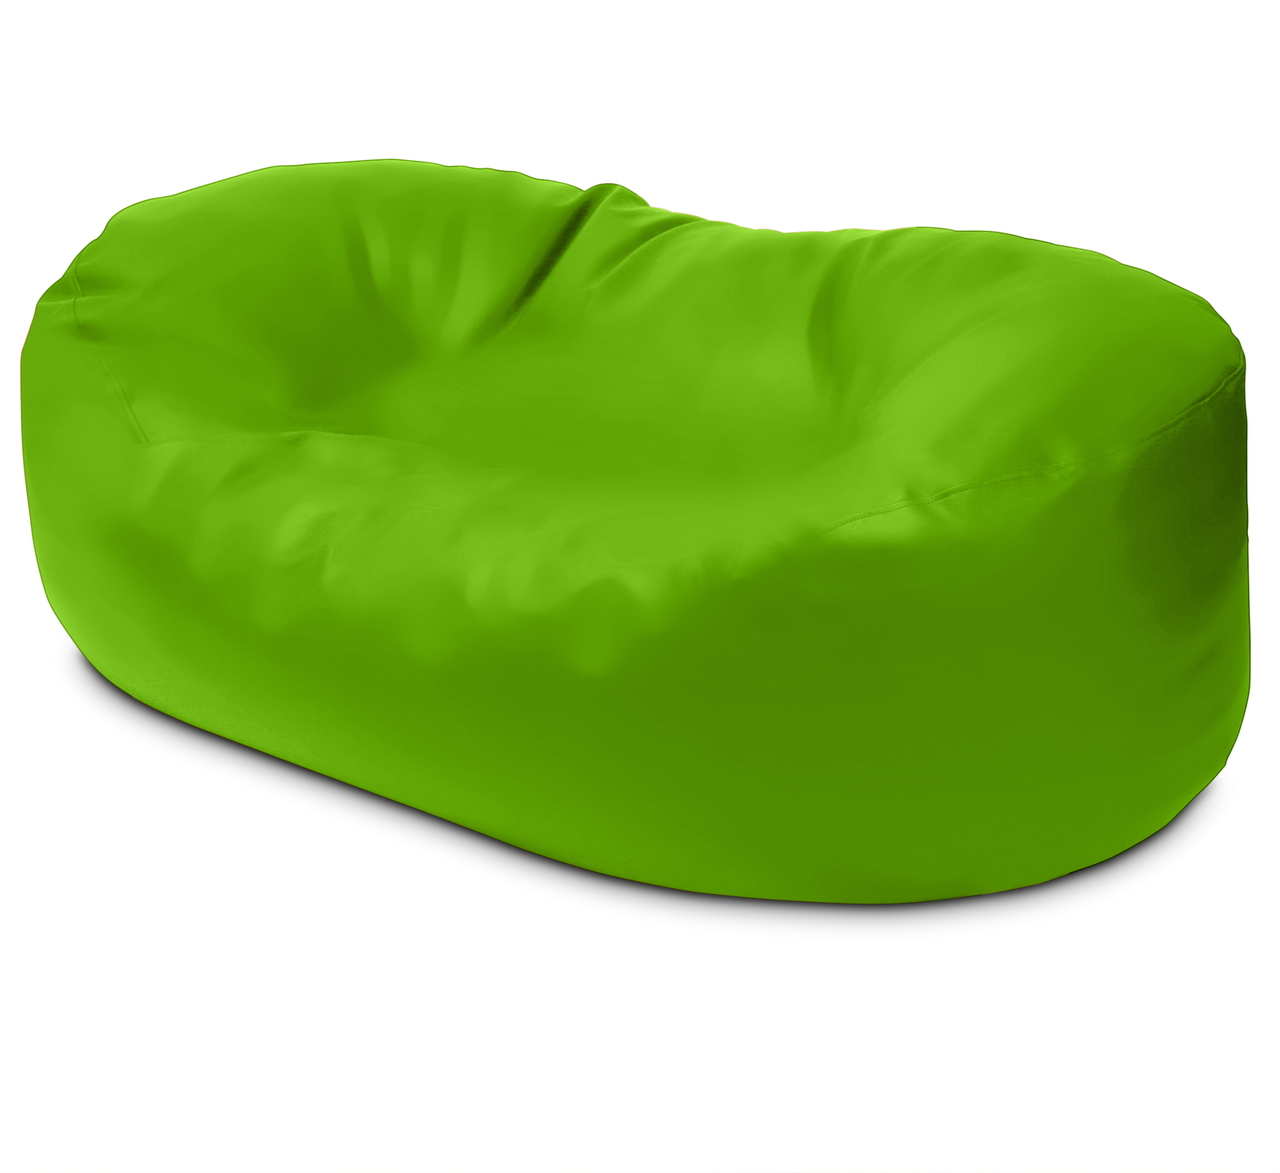 Classic 2m Couch in lime